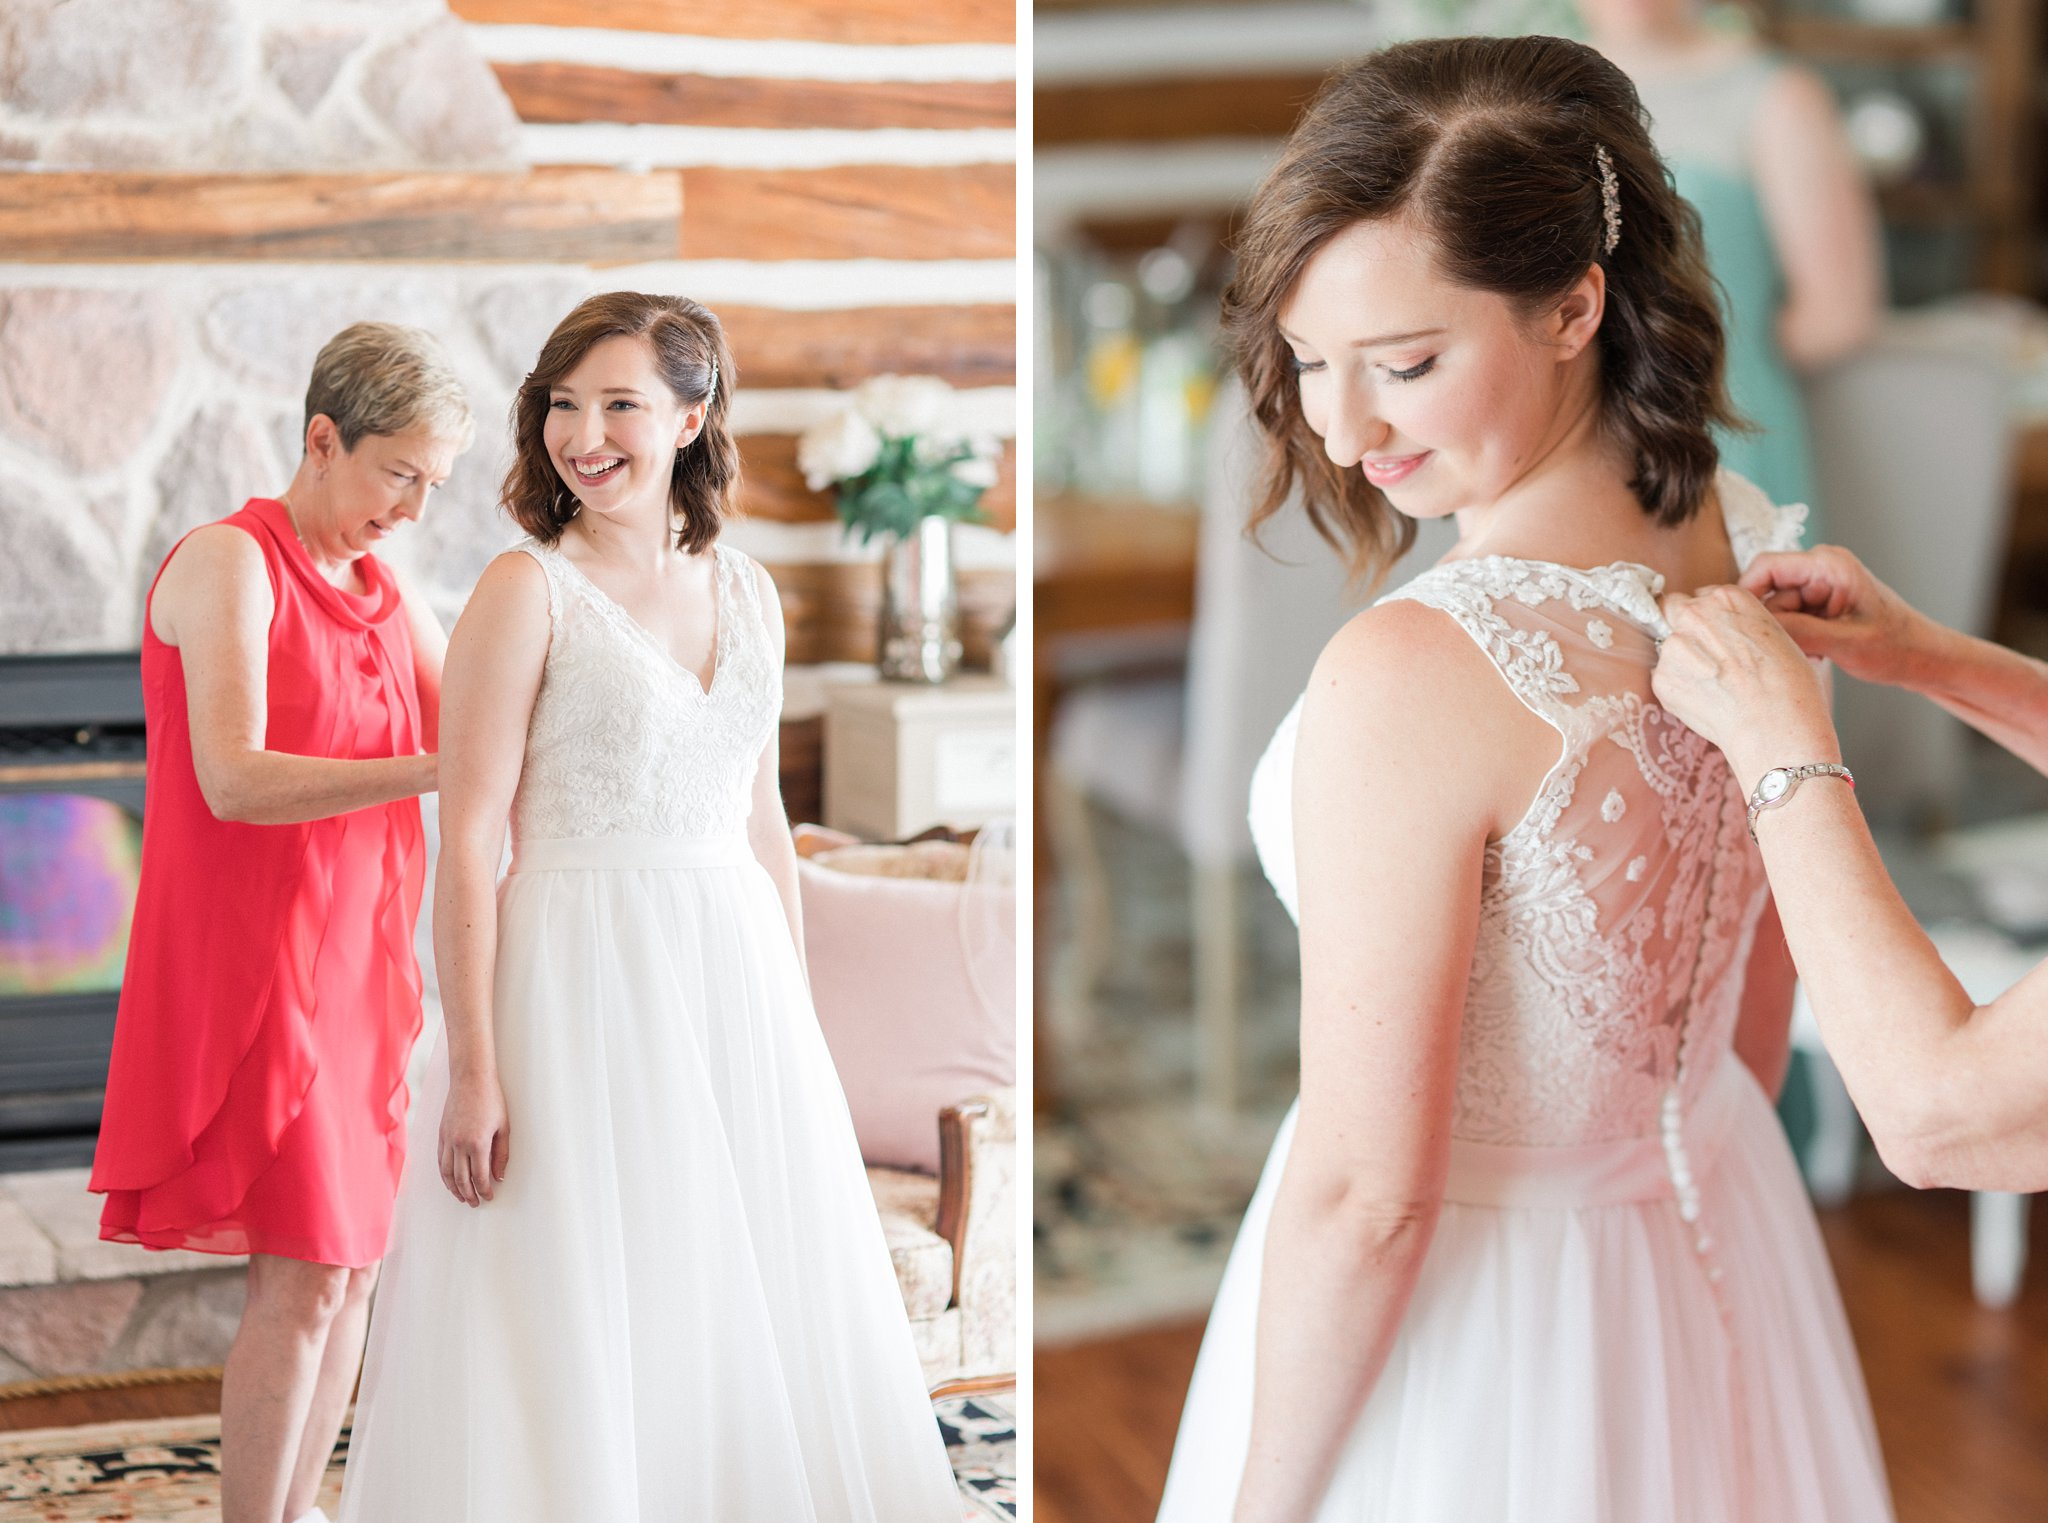 With Love Bridal Boutique lace back dress Dog-friendly wedding venue Ottawa Stonefields Amy Pinder Photography